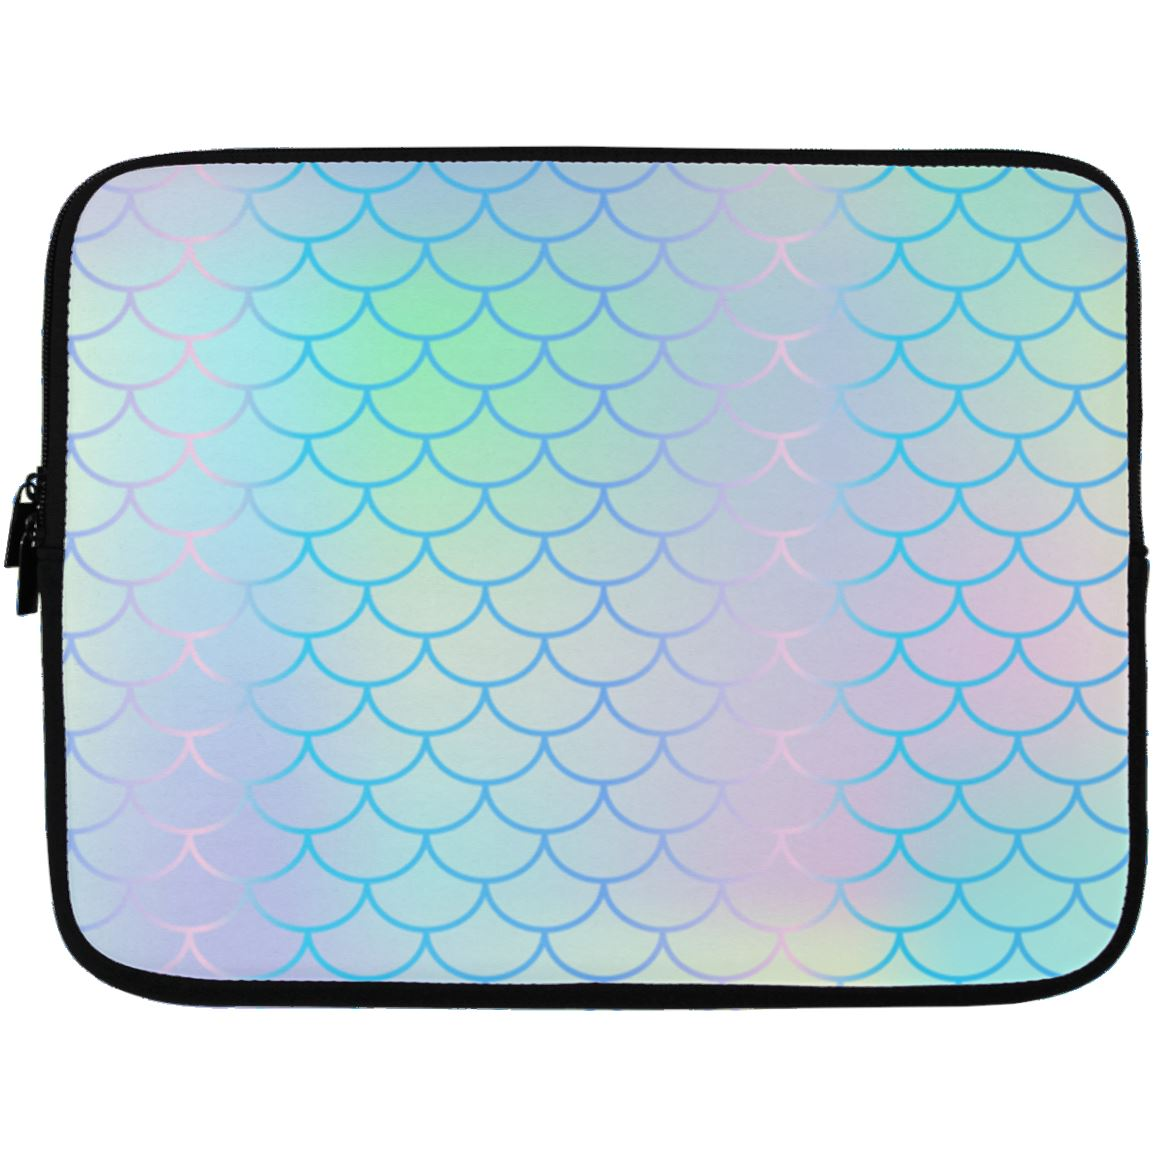 Iridescent Mermaid Laptop Sleeve Apparel Laptop Sleeve - 13 inch White One Size